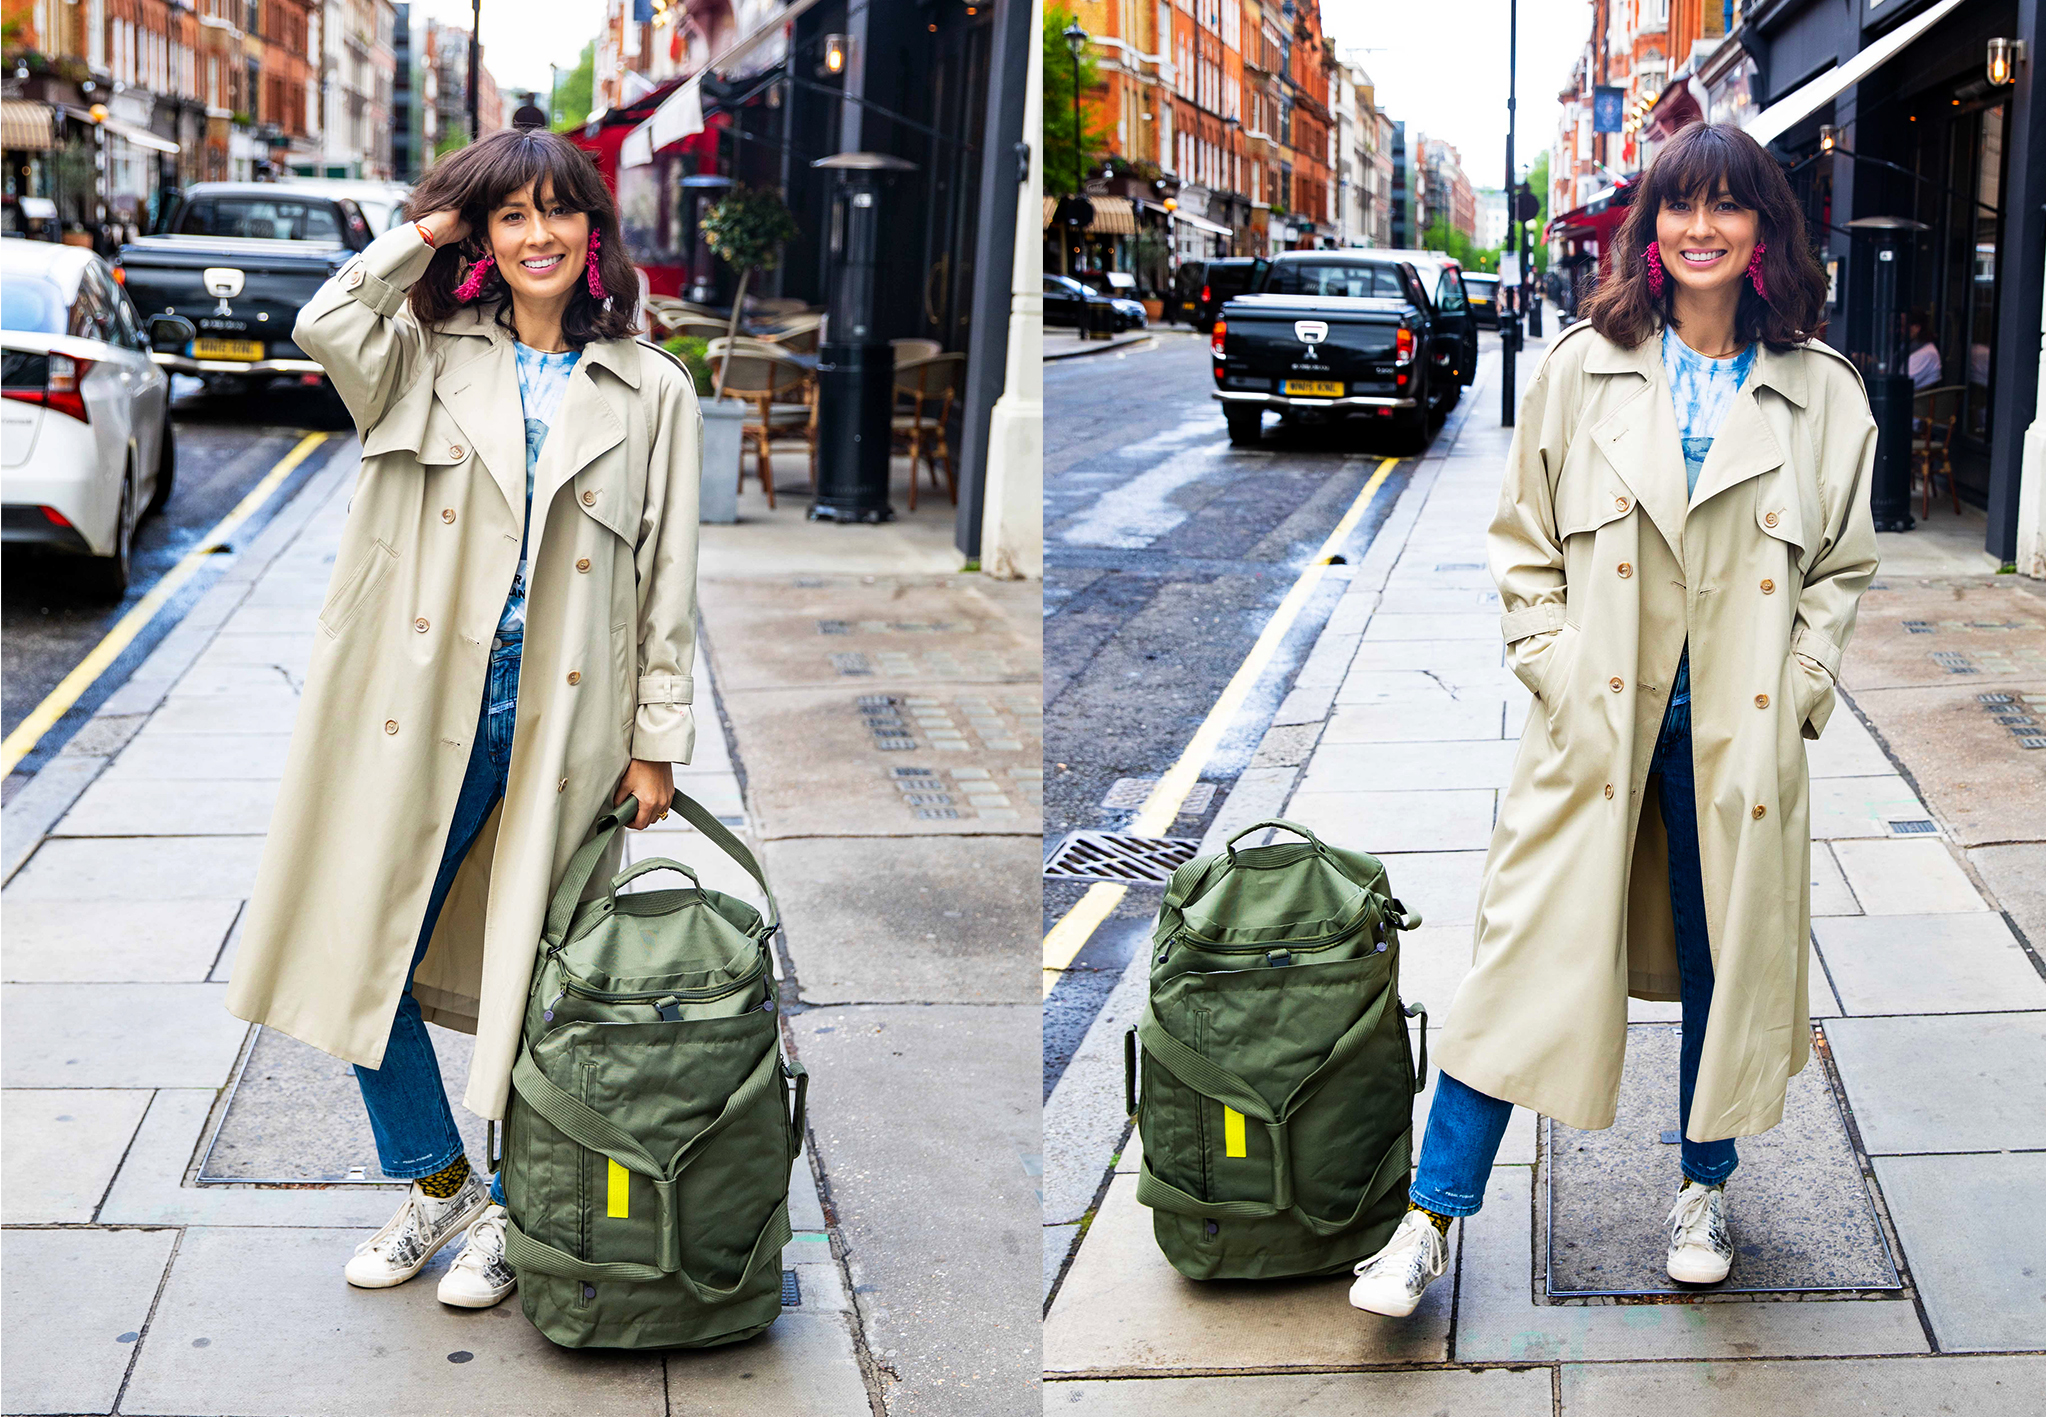 Lefrik suitcase, made from eco-friendly materials constructed from recycled PET plastic bottles, available from    The Maverick Store    from 1st October